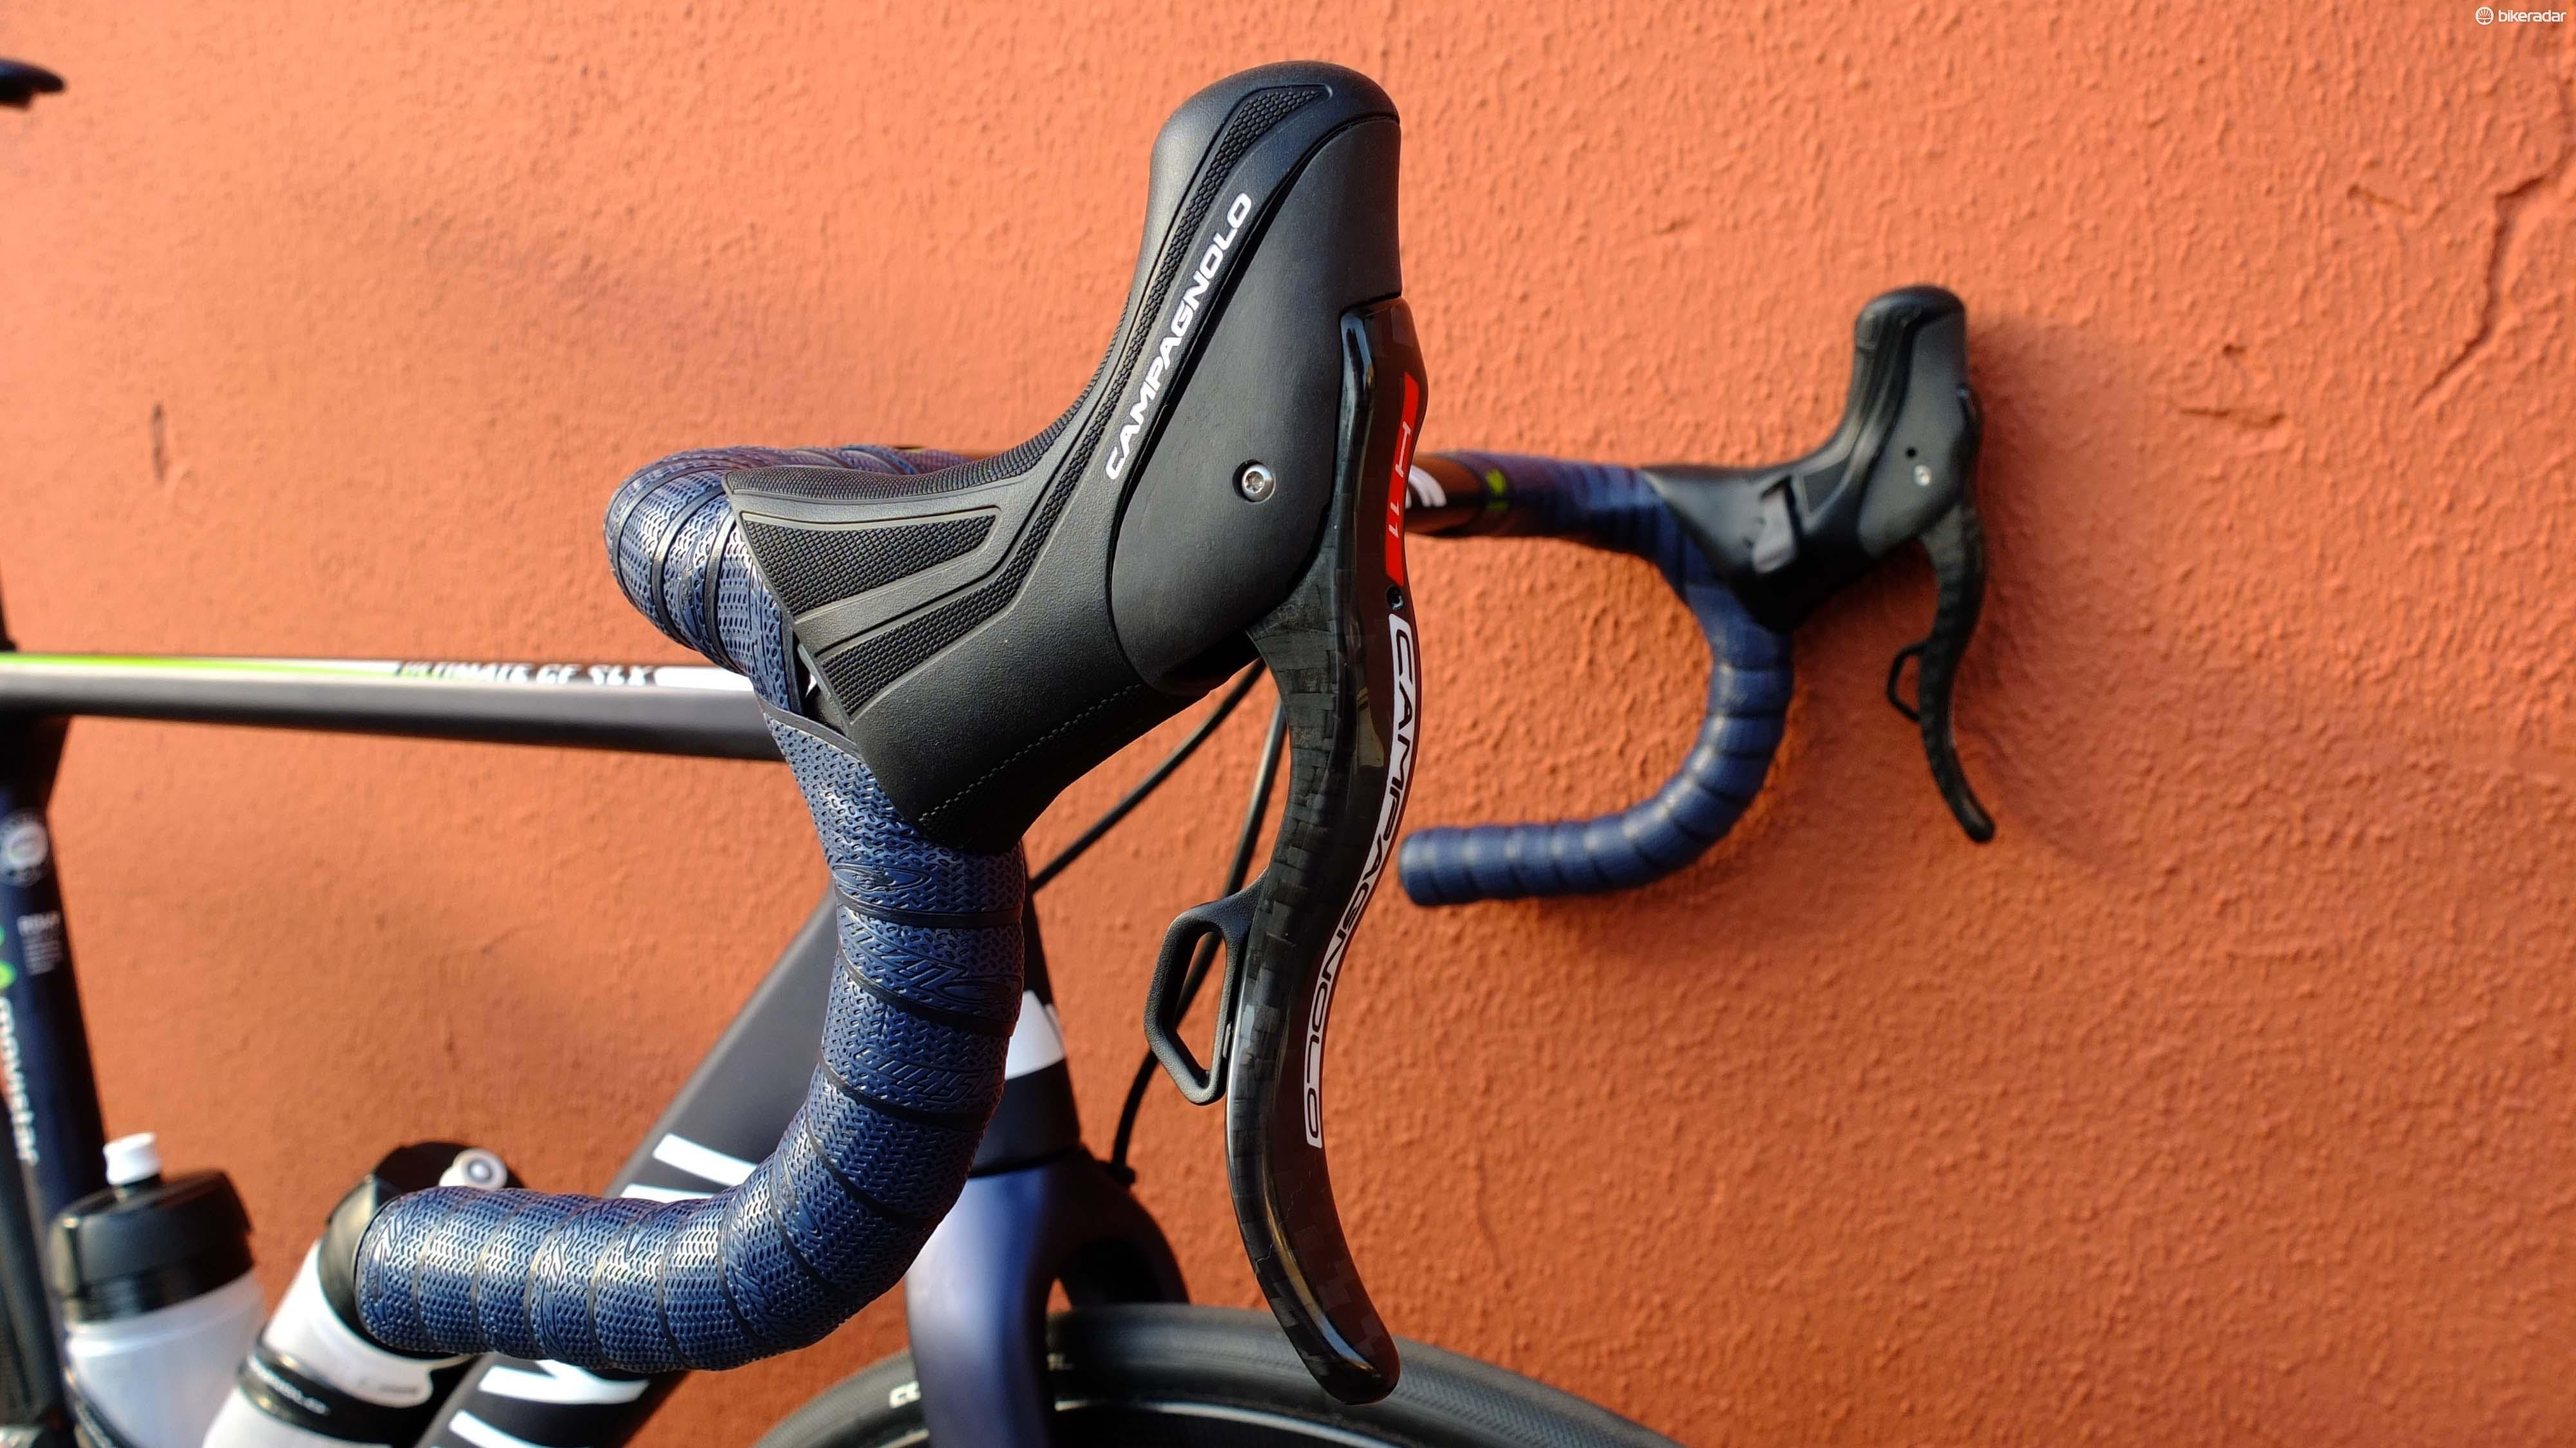 The lever's double curve profile and grippy hoods combine to give great grip and control